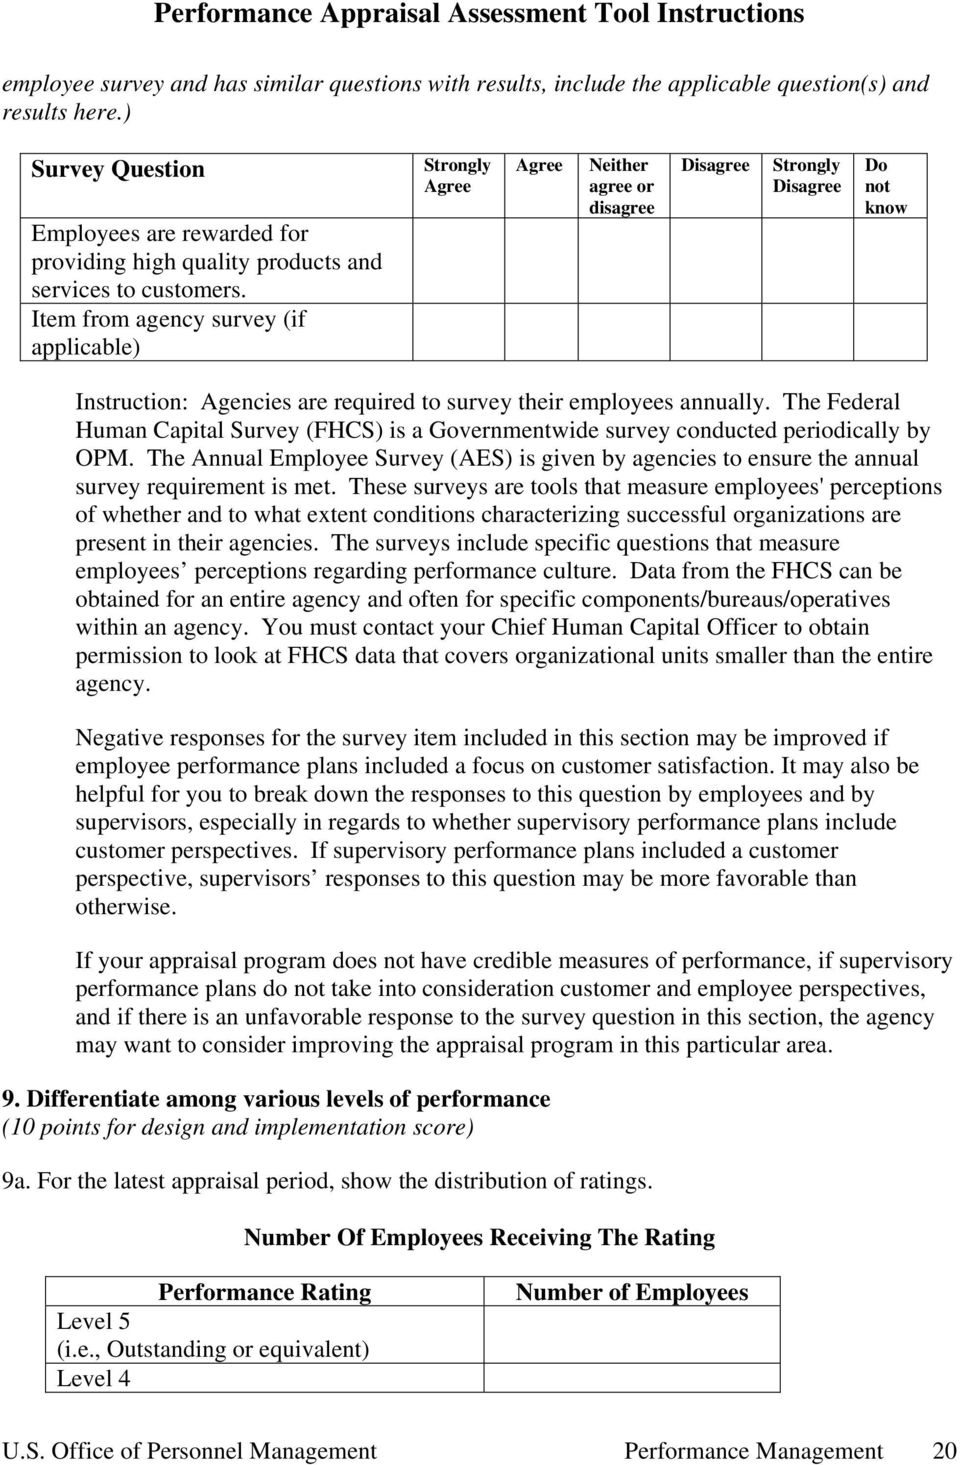 Performance Appraisal Assessment Tool Instructions Table of Contents ...